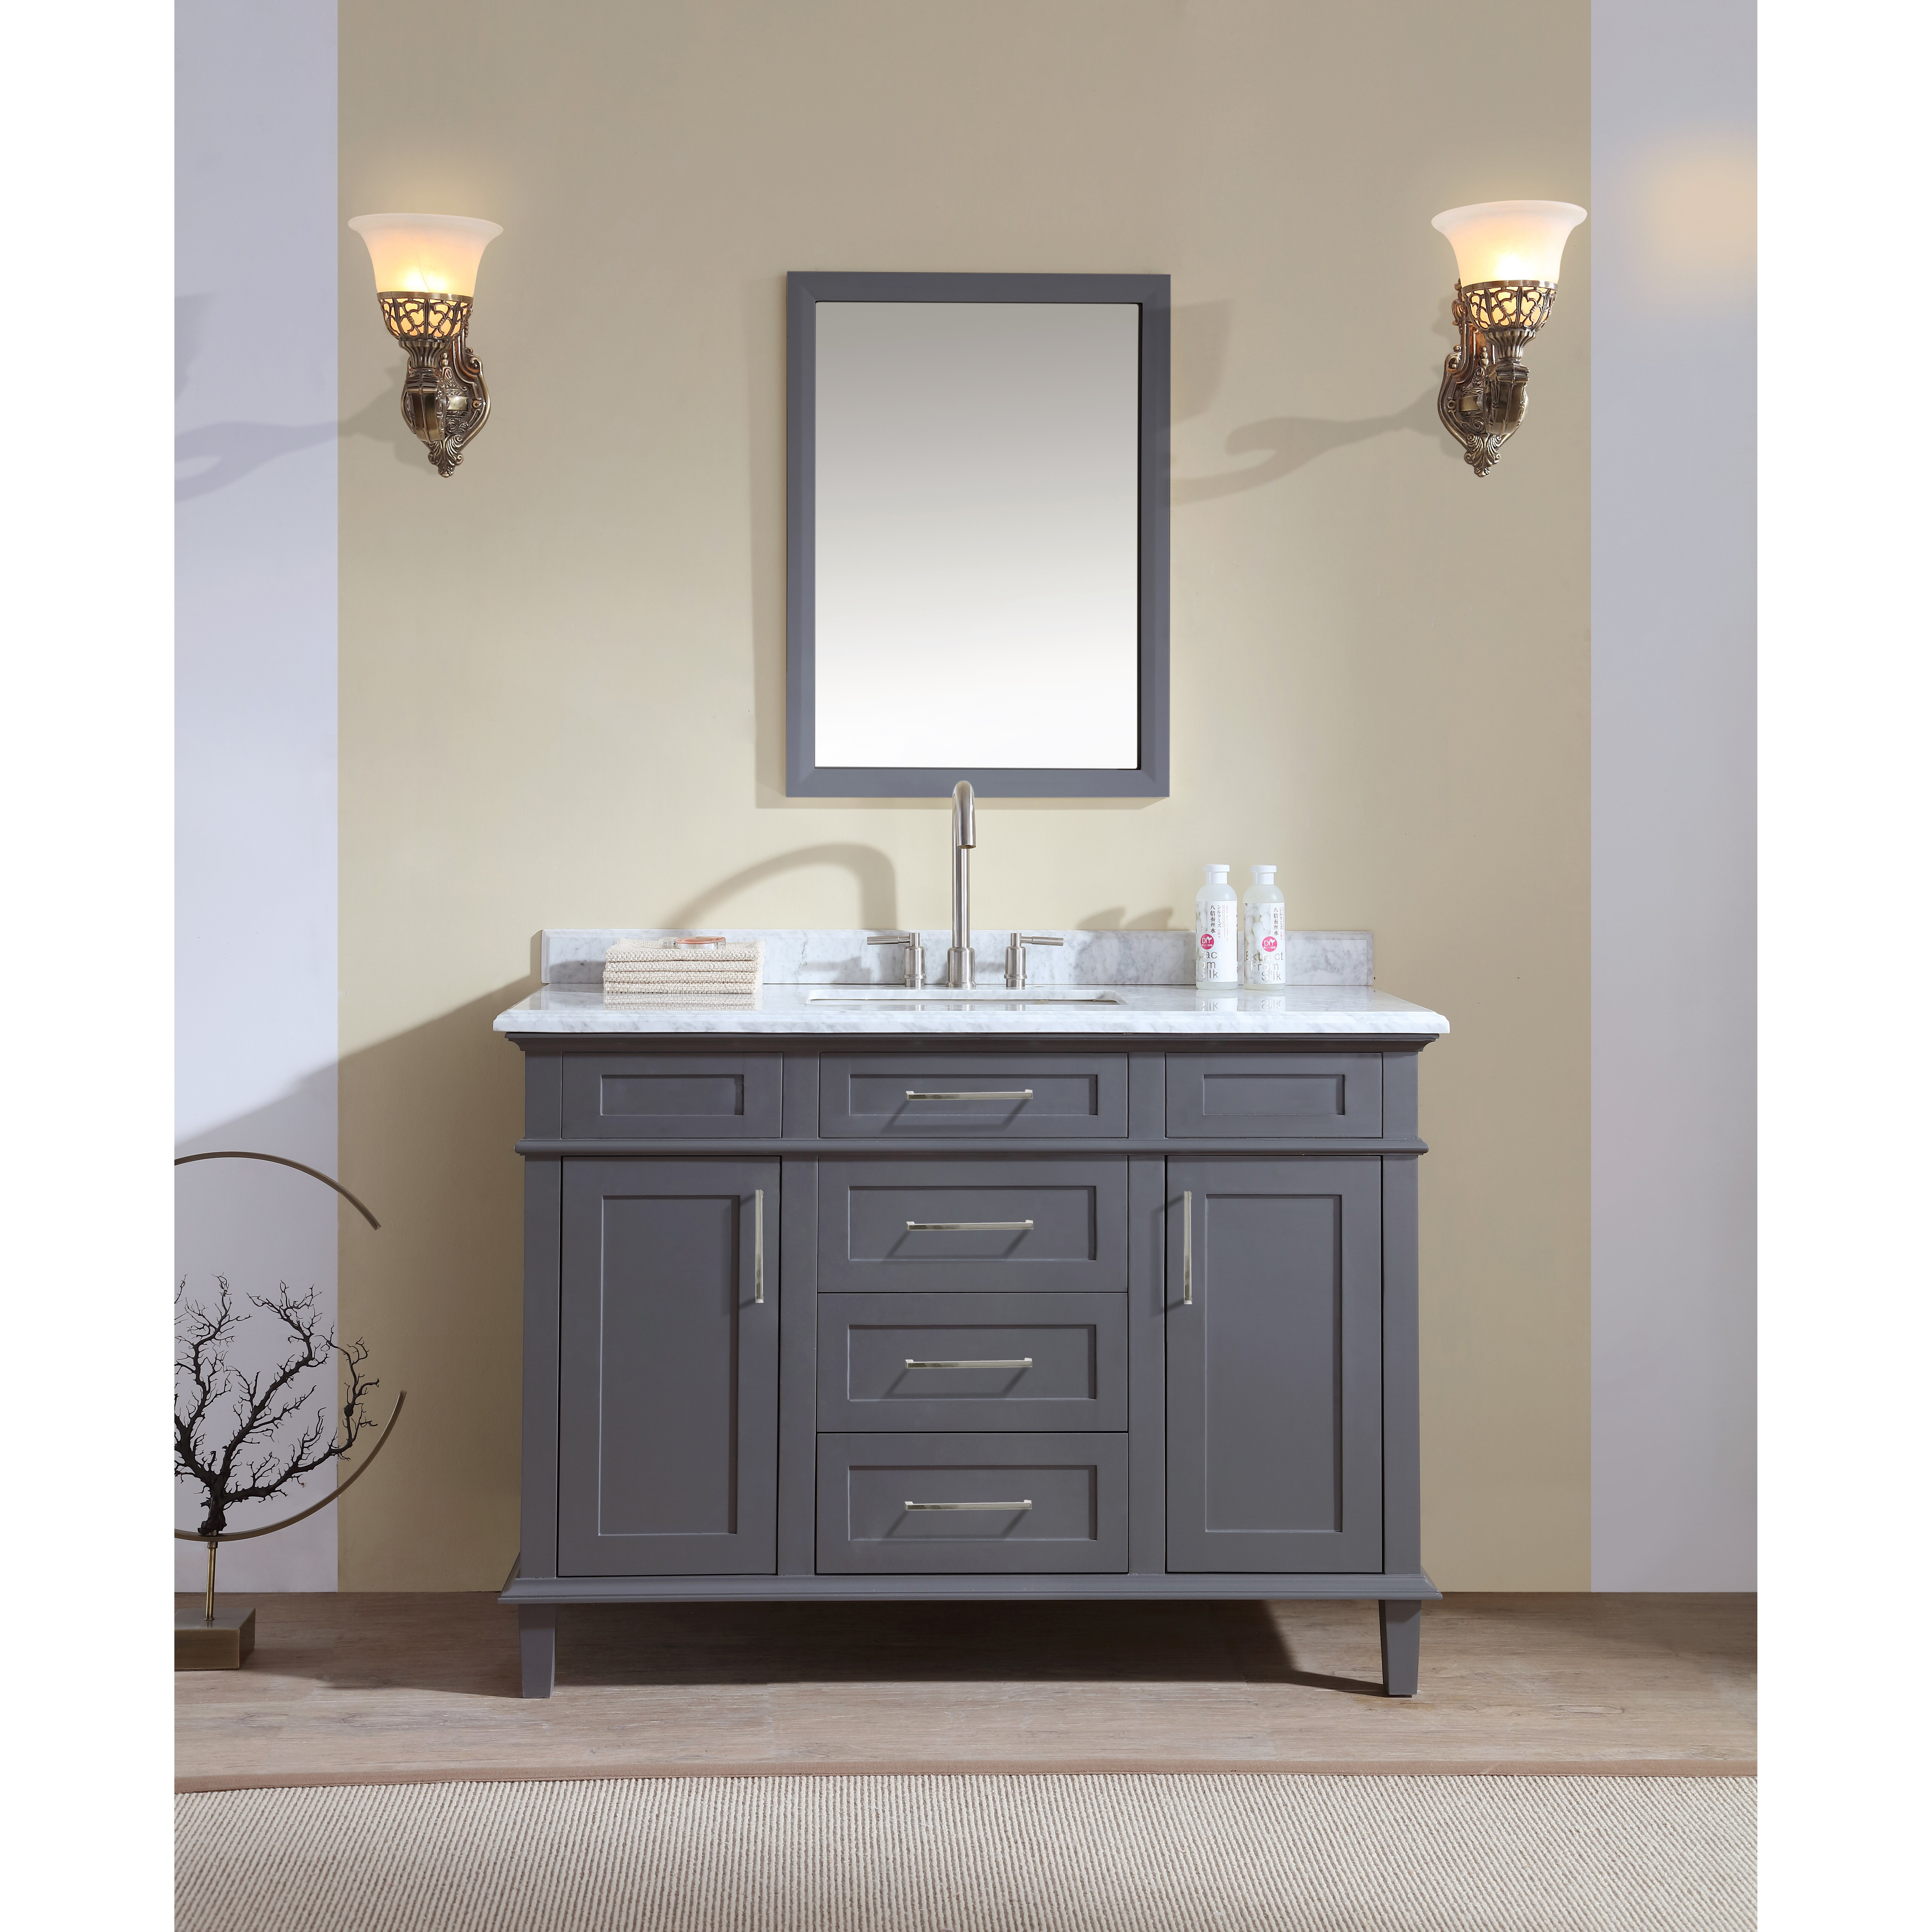 "ari kitchen & bath newport 48"" single bathroom vanity set"